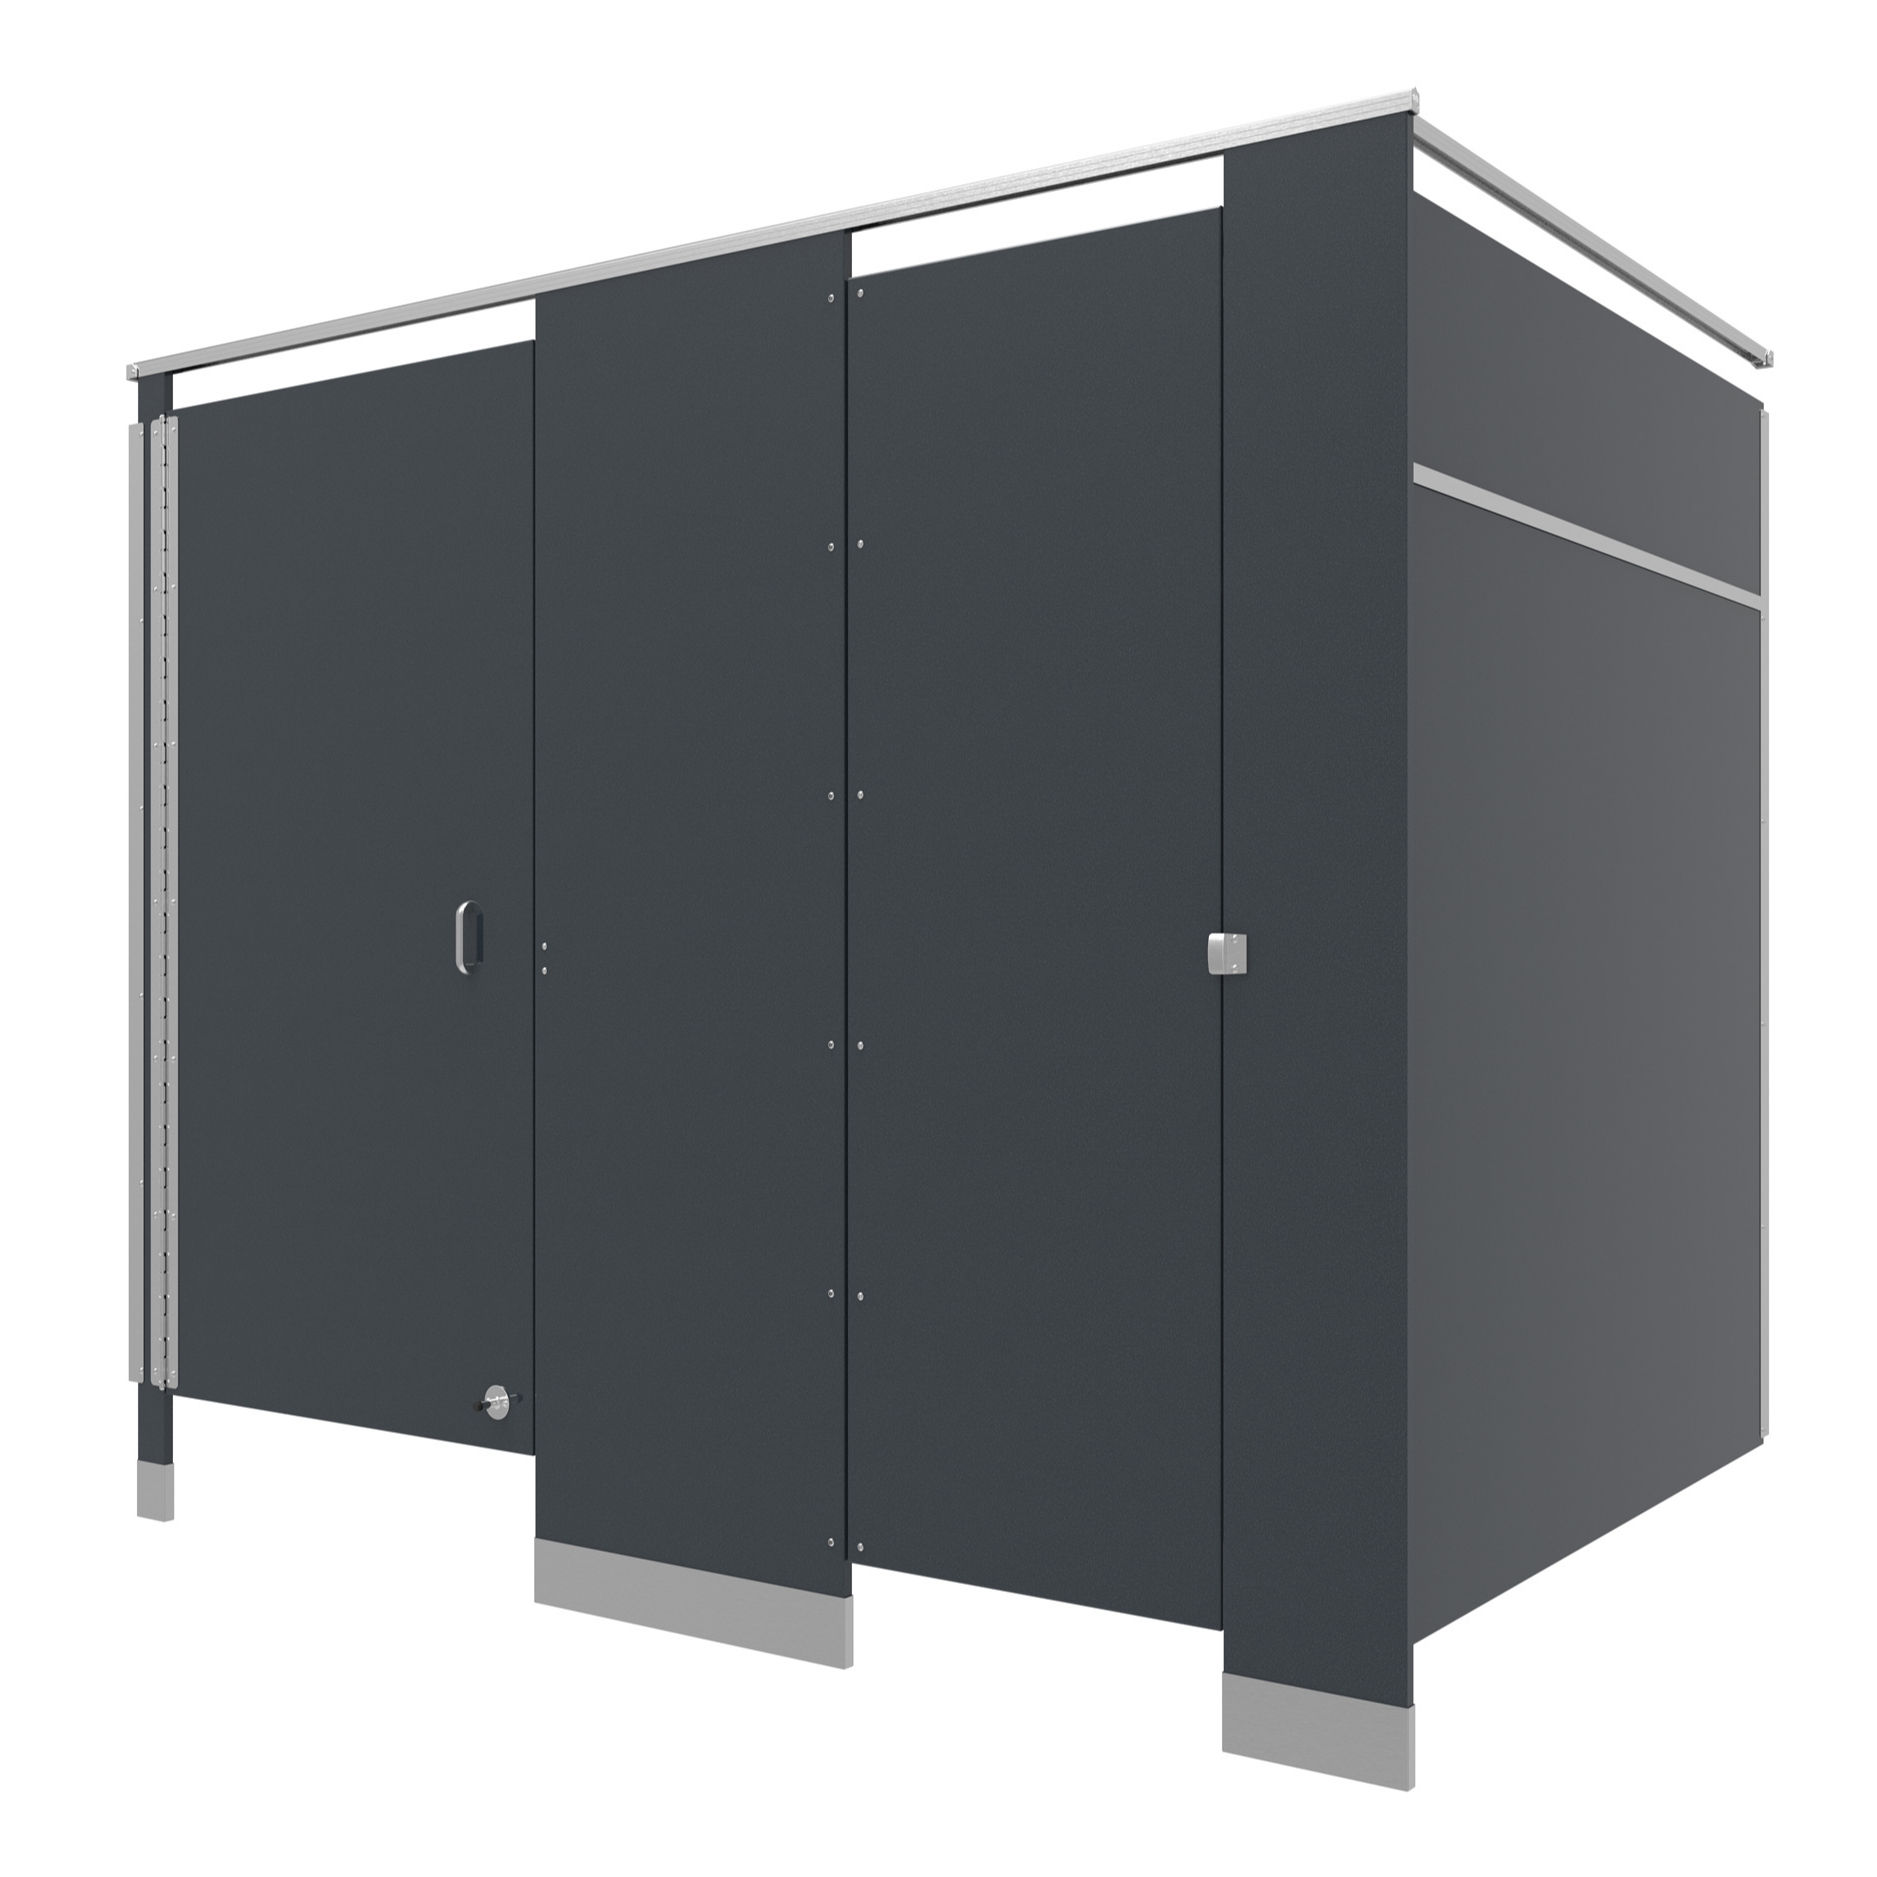 New Design Commercial Shower Partitions Restroom Partition Toilet Cubicles Stalls HPL Panel Toilet Wall Partition